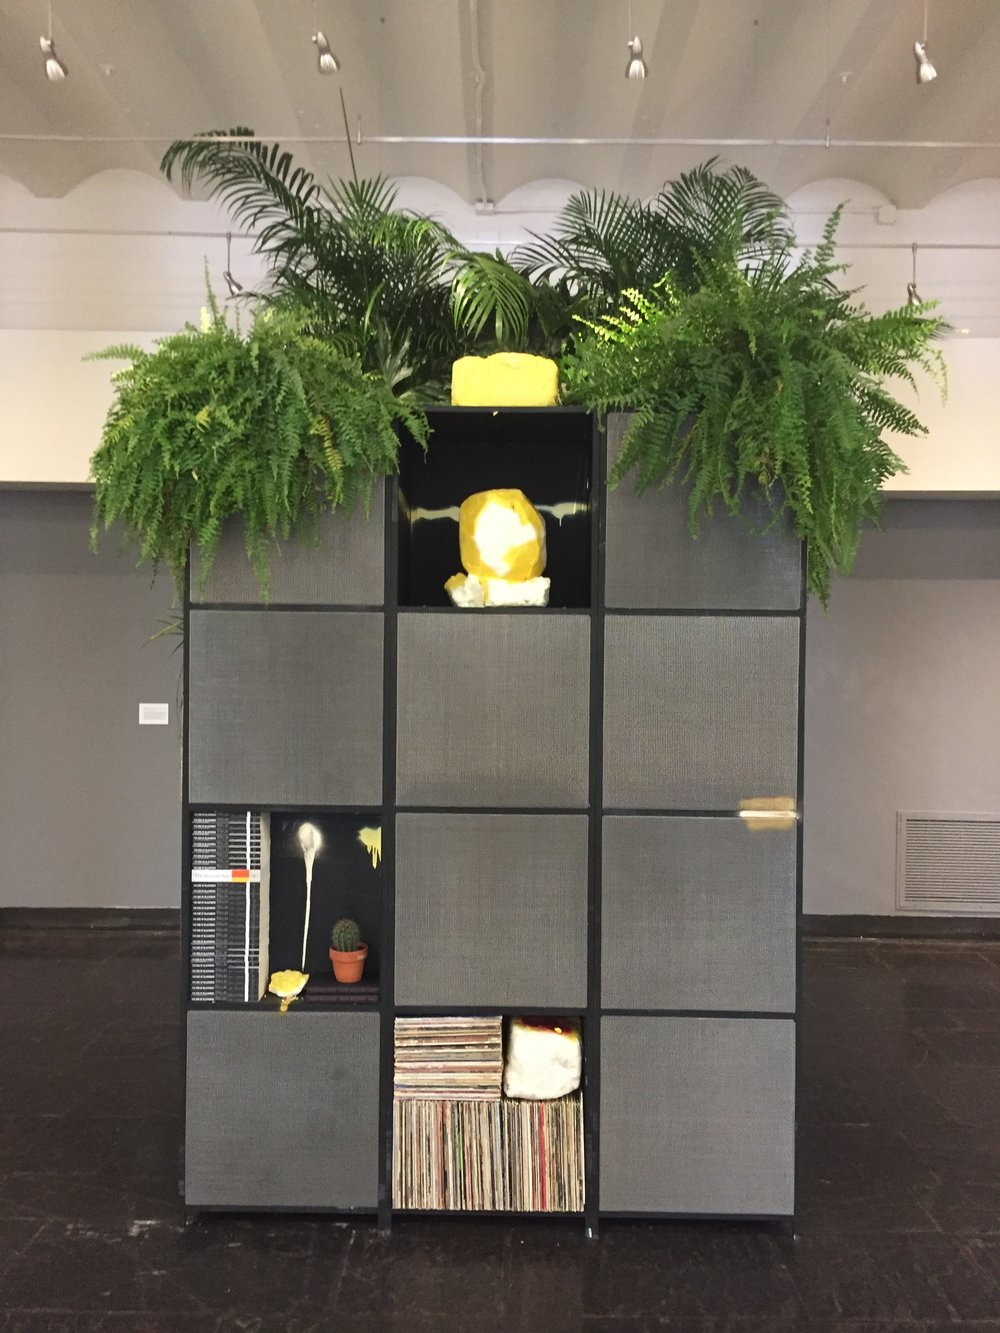 Fiend , 2017 Black Steel, microphone mesh, spray enamel, plant, books, vinyl, shea butter. Courtesy of the artist and Hauser & Wirth